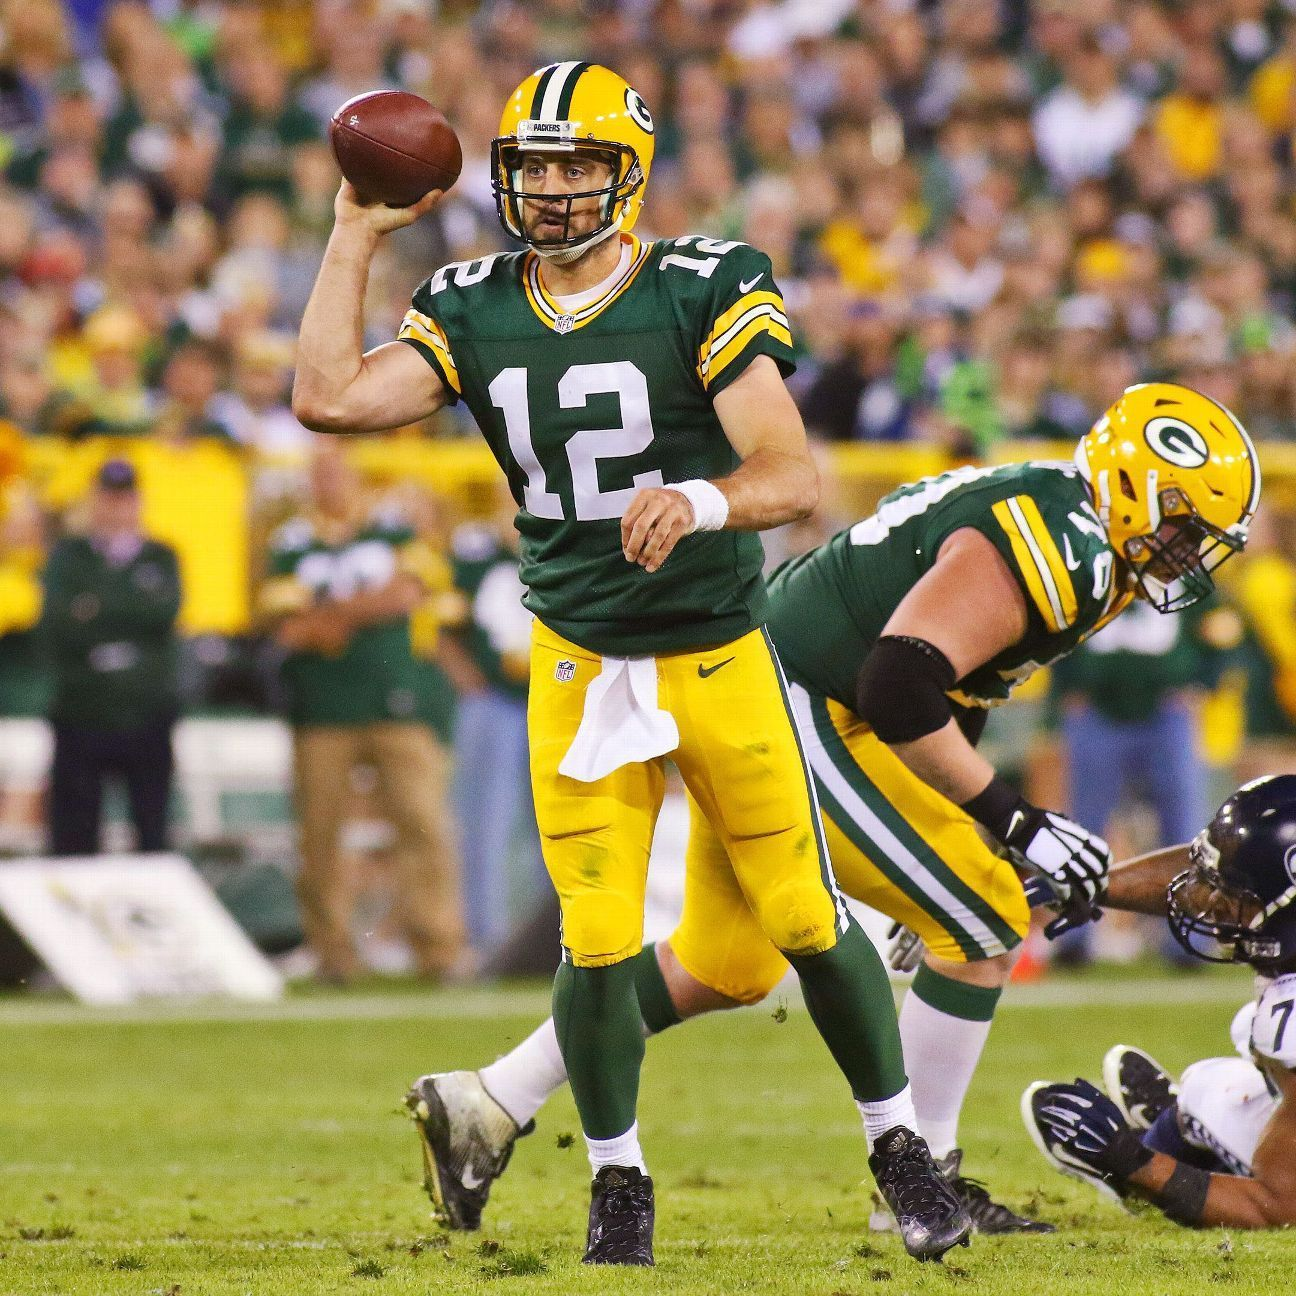 Aaron Rodgers Delivers Epic Fourth Quarter Drive To Beat Seahawks Green Bay Packers Blog Green Bay Packers Fans Packers Vs Seahawks Green Bay